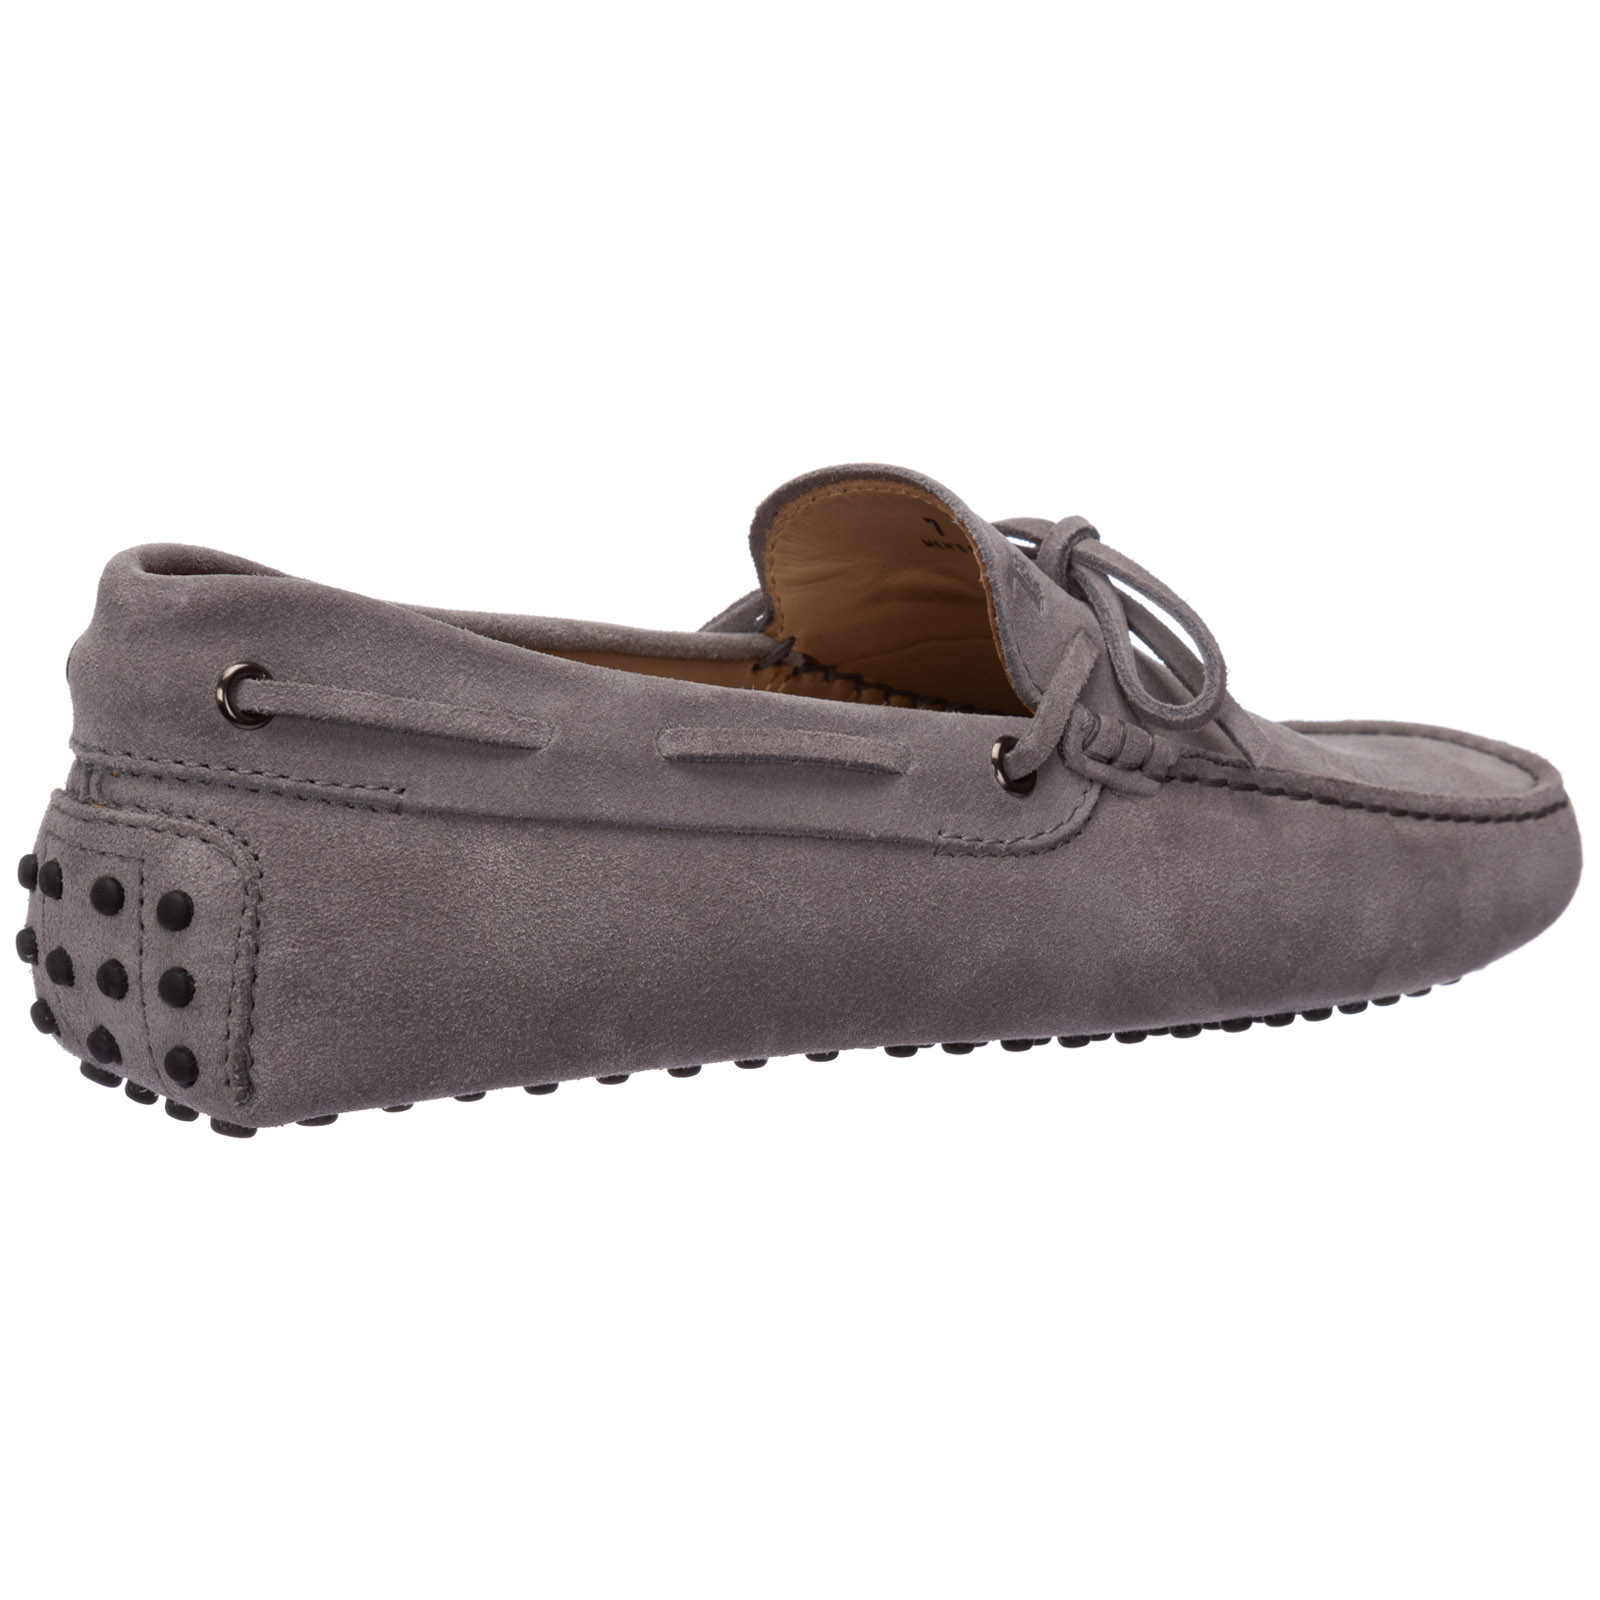 MOA Master Of Arts Men/'s Moccasins Loafers Shoes Sz 7 8 8.5 9.5 10 11